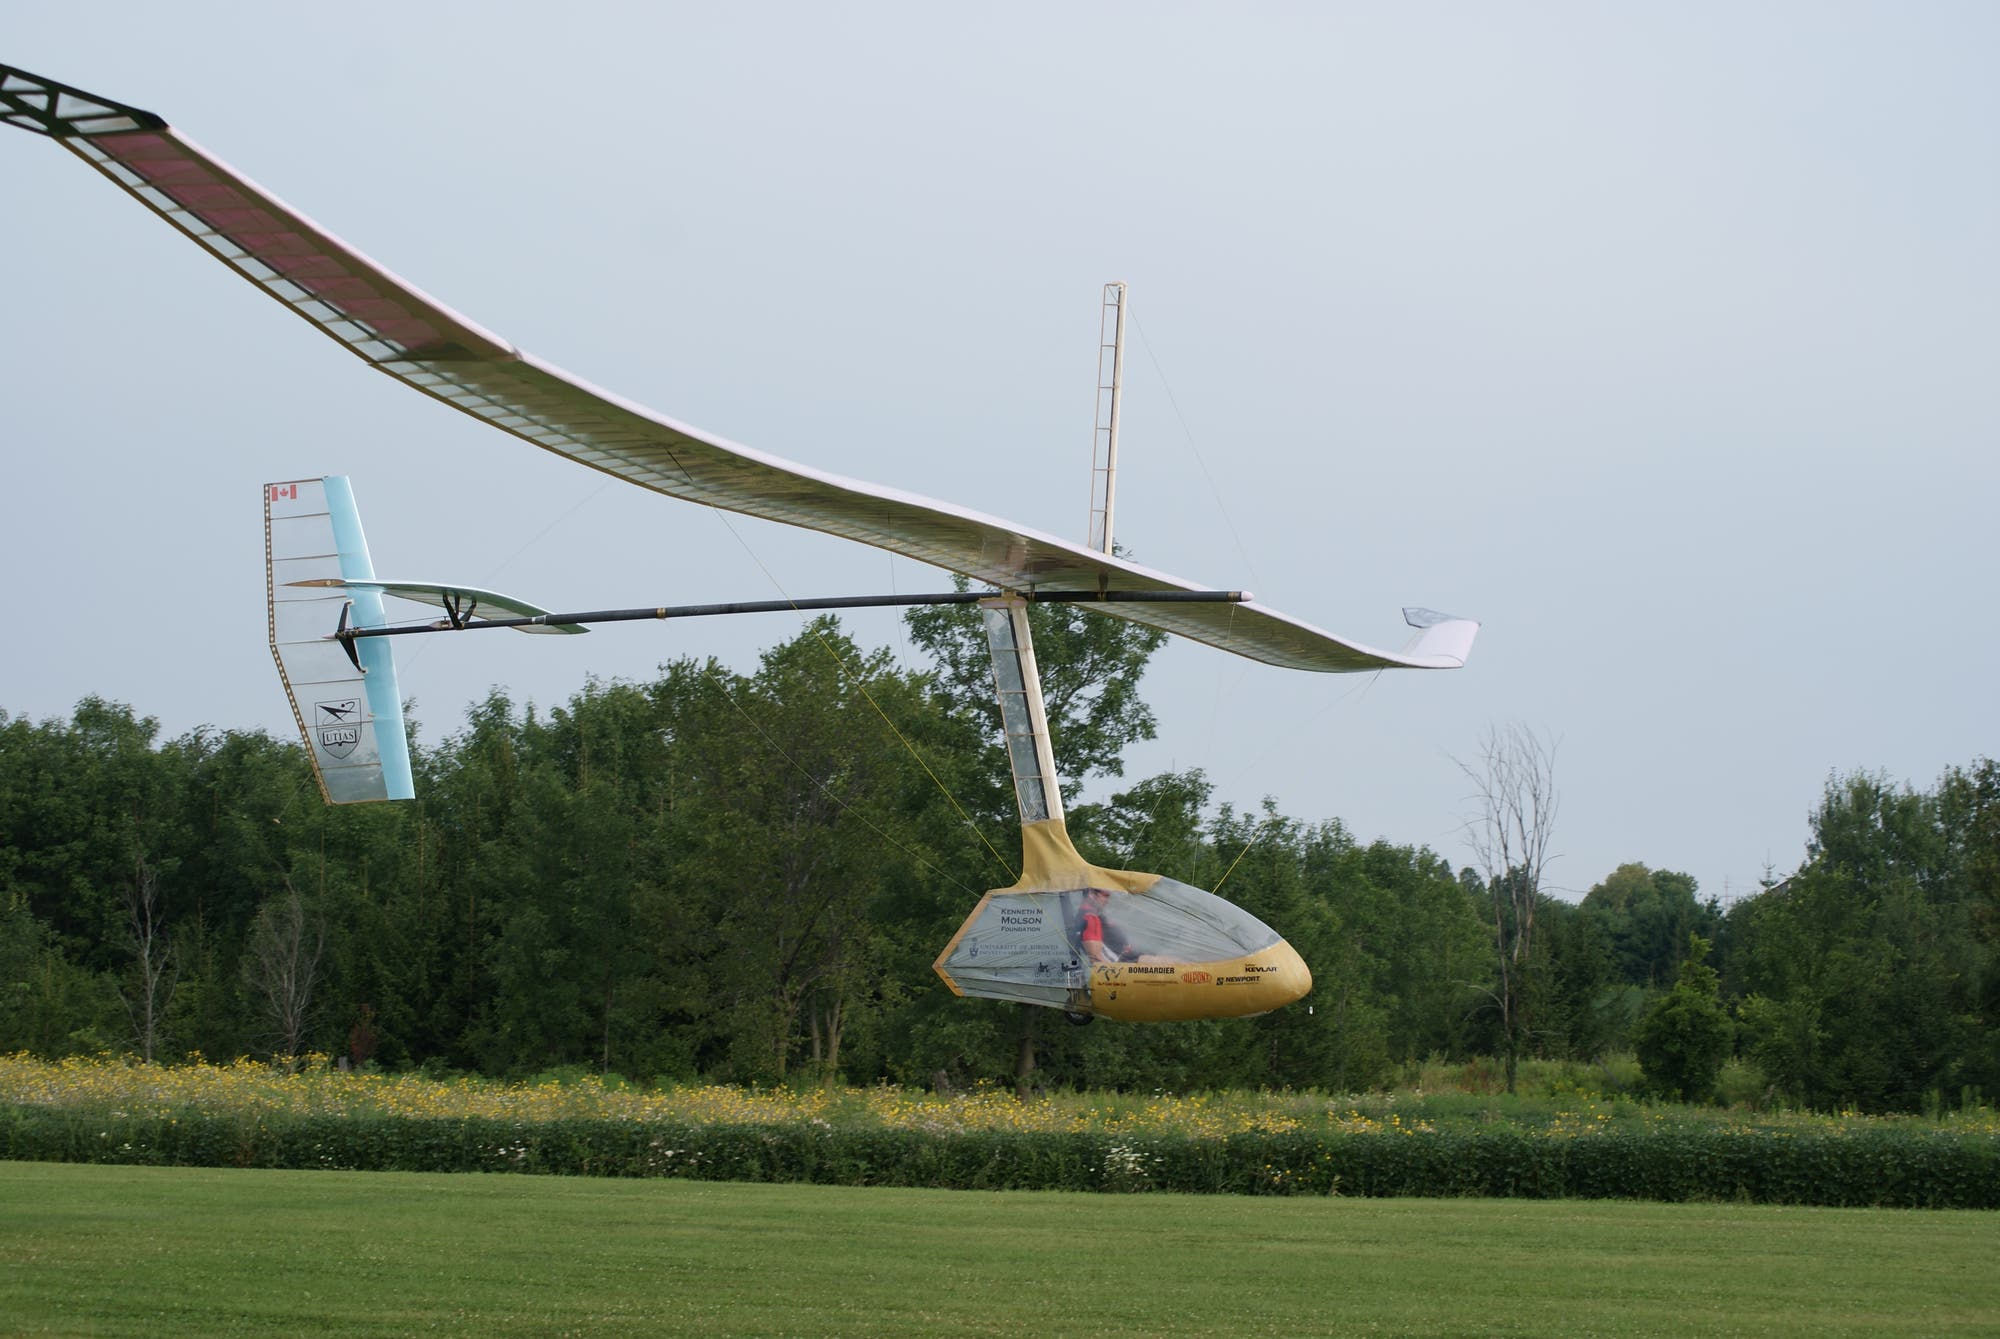 Ornithopter - in Leichtbauweise